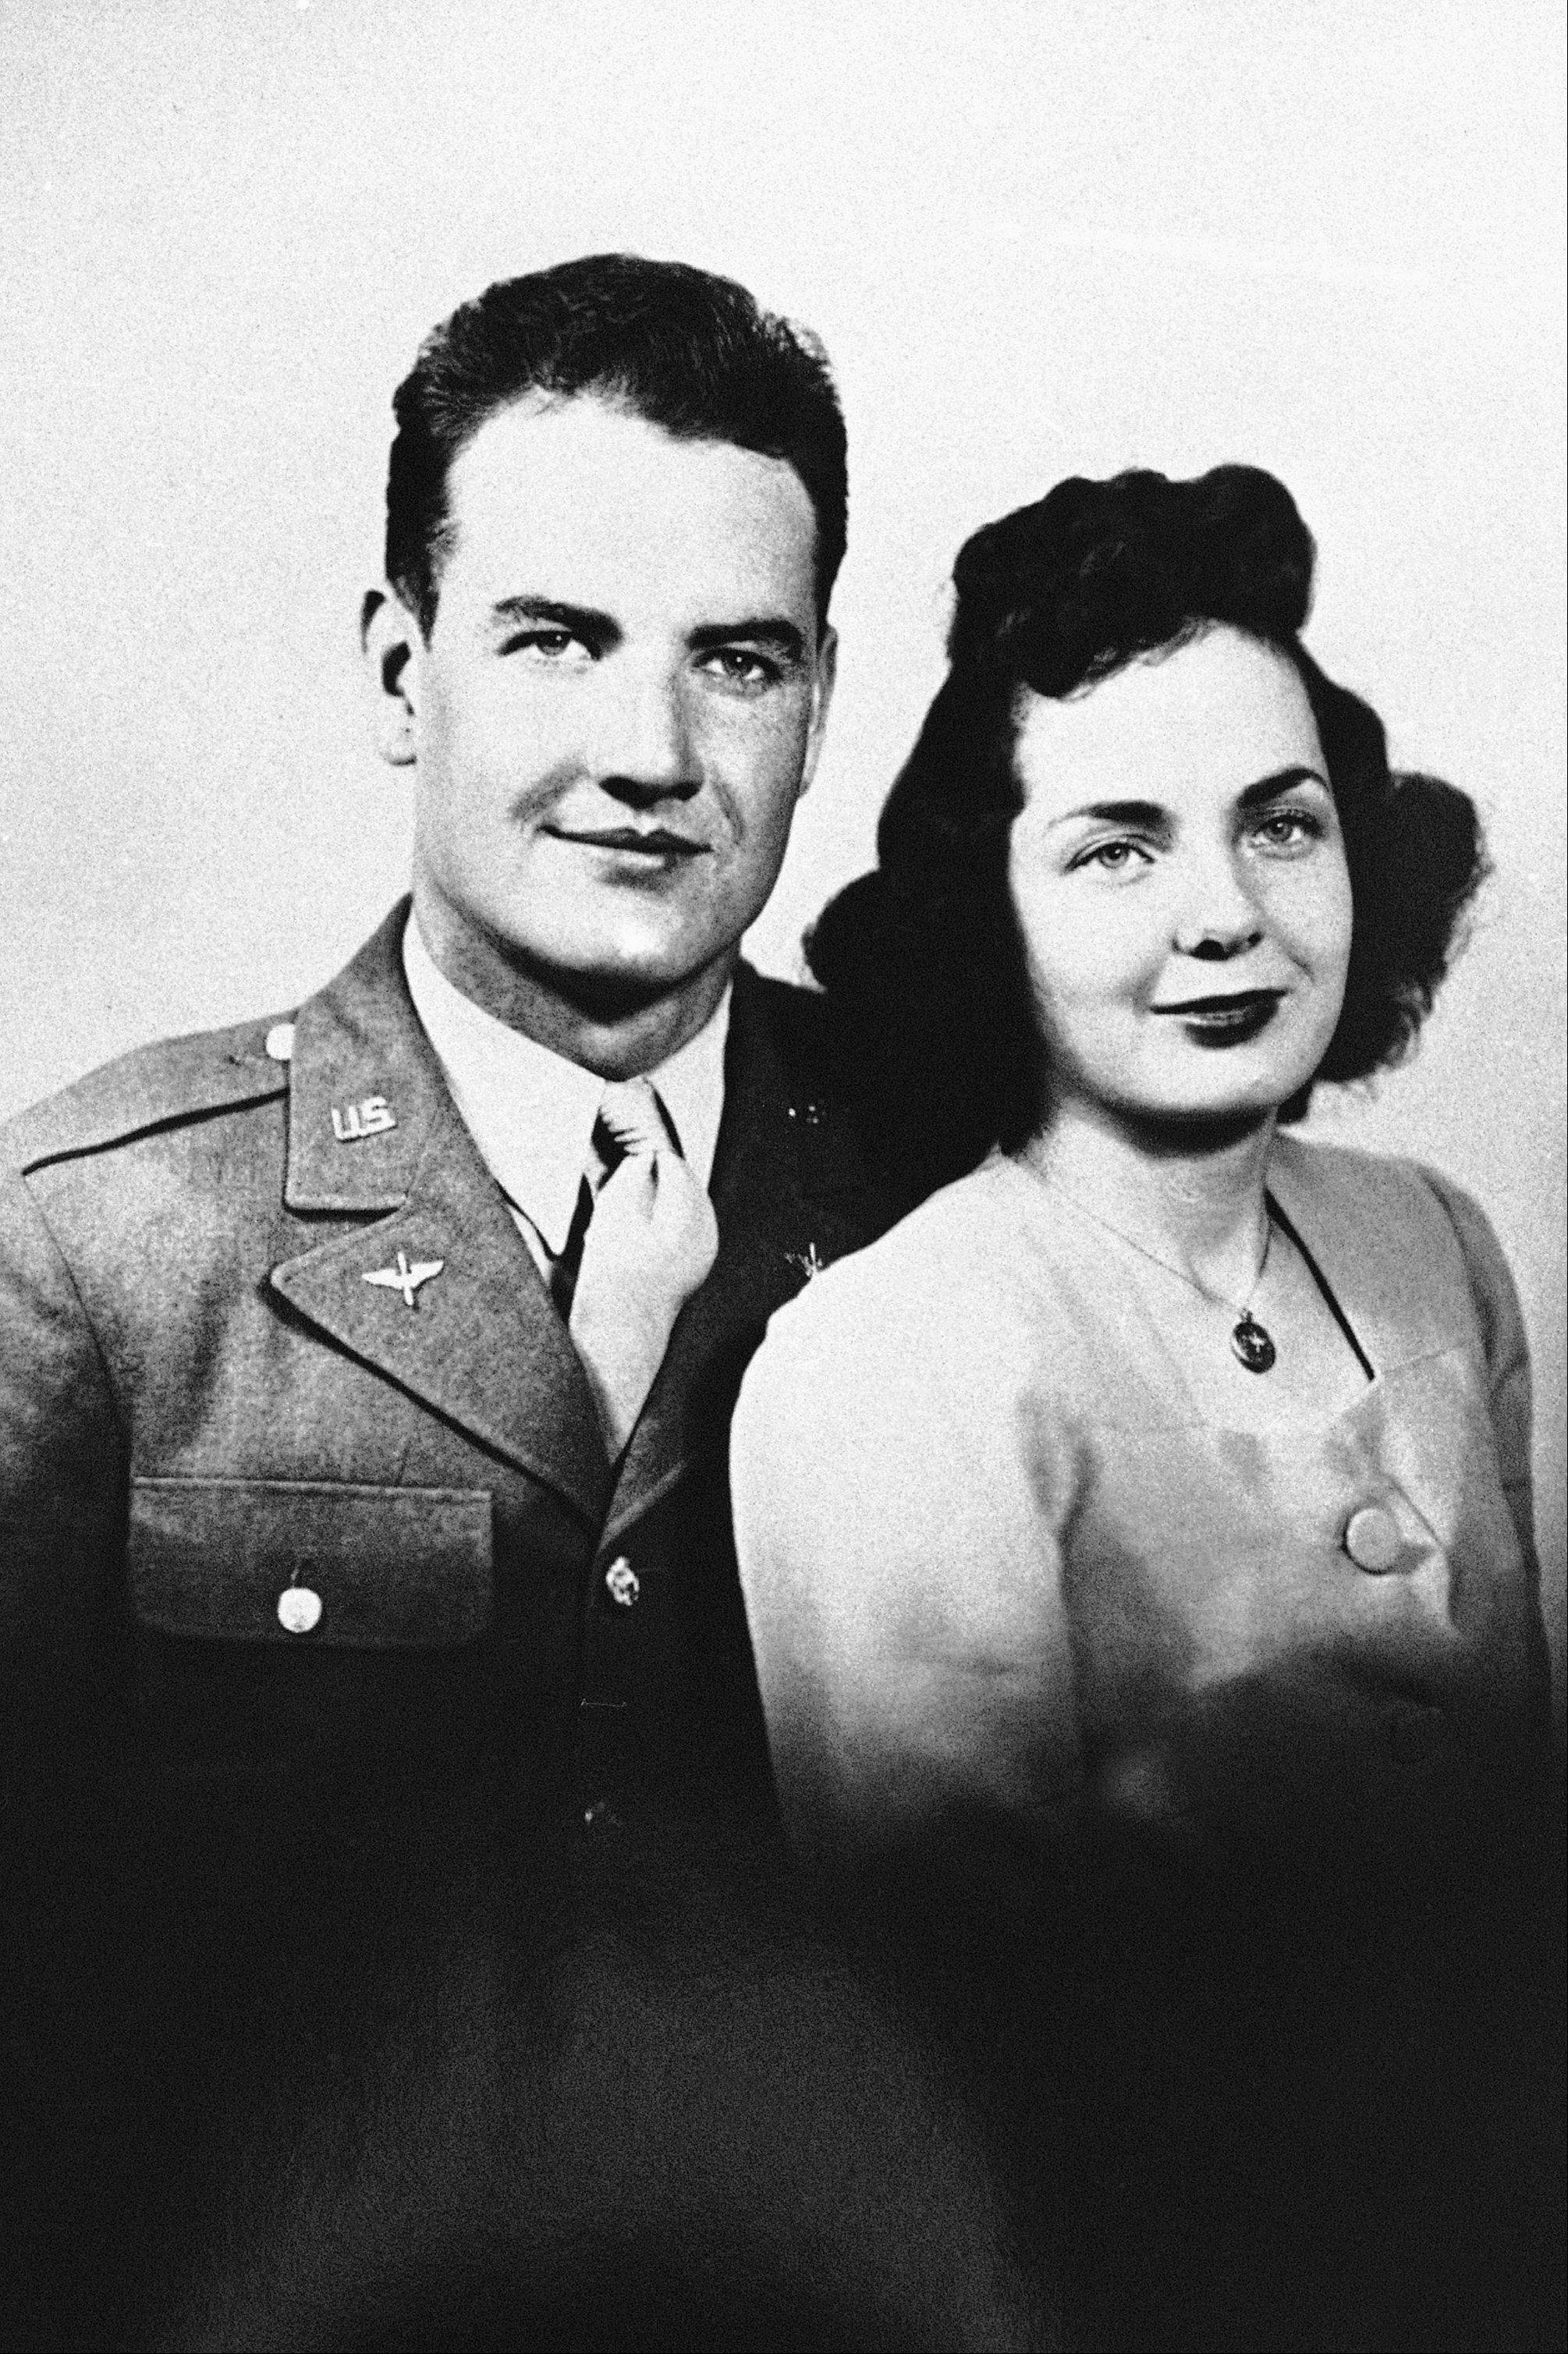 George McGovern and his wife Eleanor in their wedding photo in 1943.